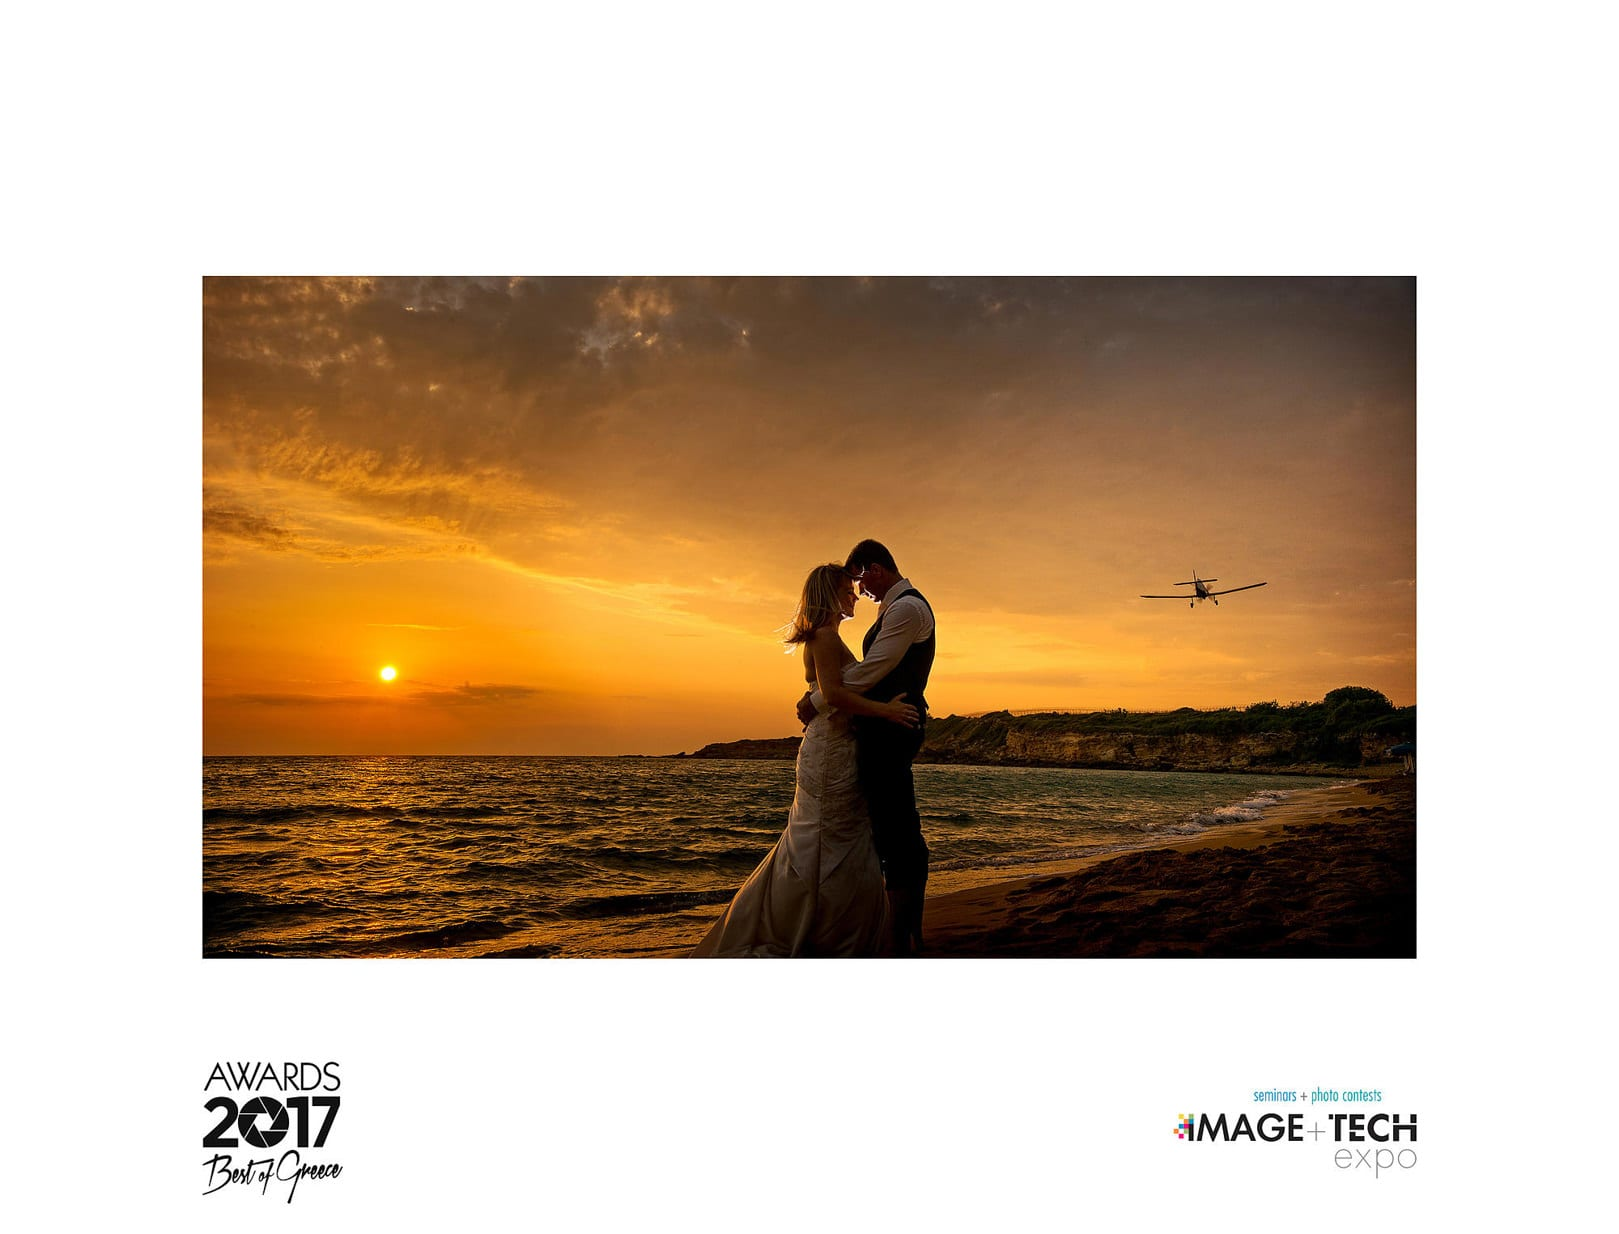 IMAGE + TECH EXPO 2017 AWARD - WEDDING PORTRAIT CATEGORY